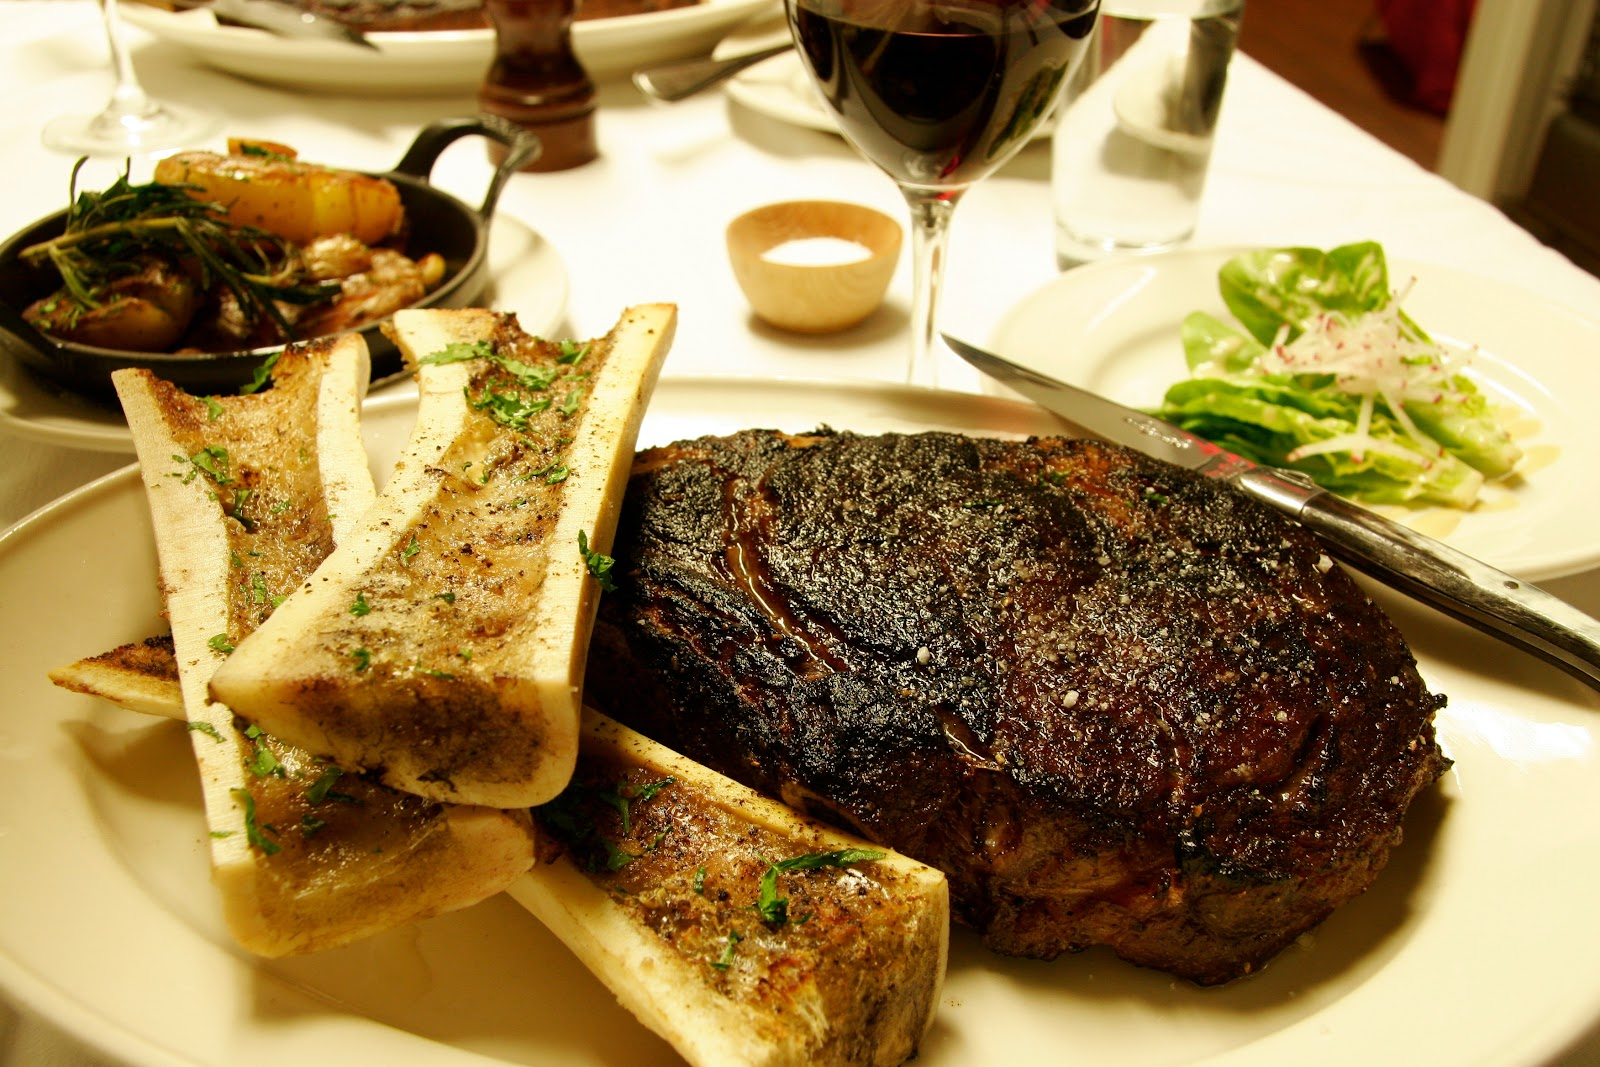 ... de Boeuf for two, with roasted marrow bones and sucrine lettuce salad